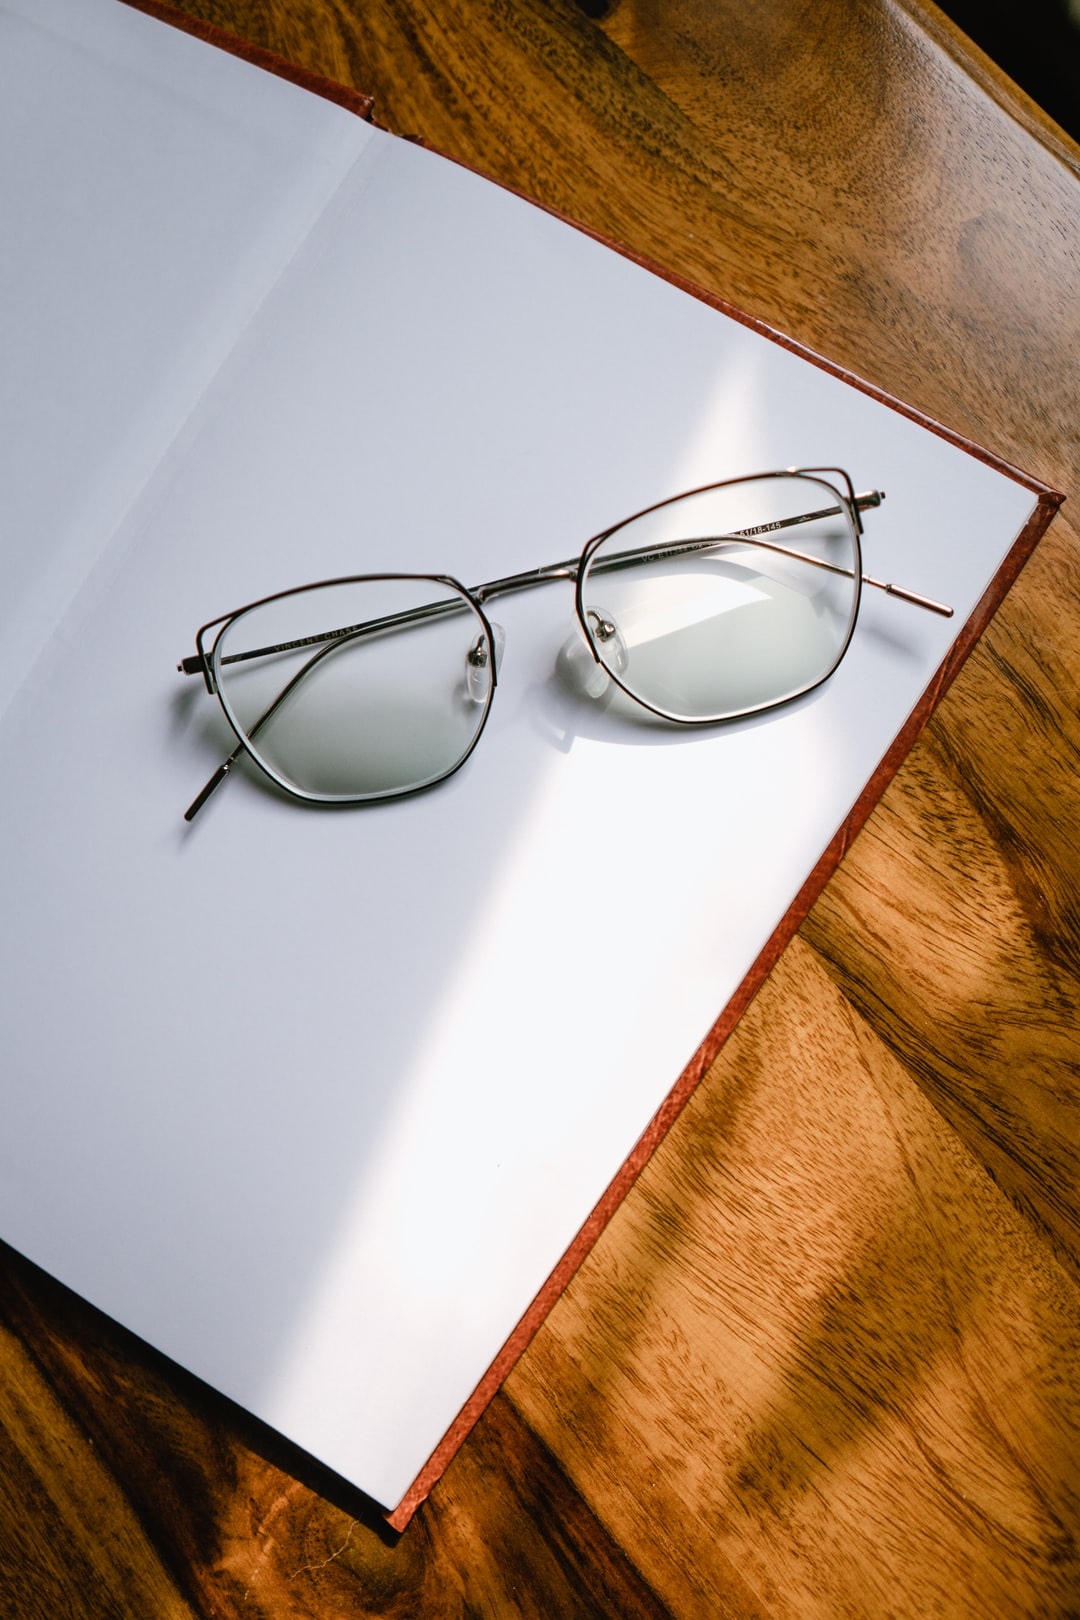 How to Look Younger by Wearing the Right Eyeglasses